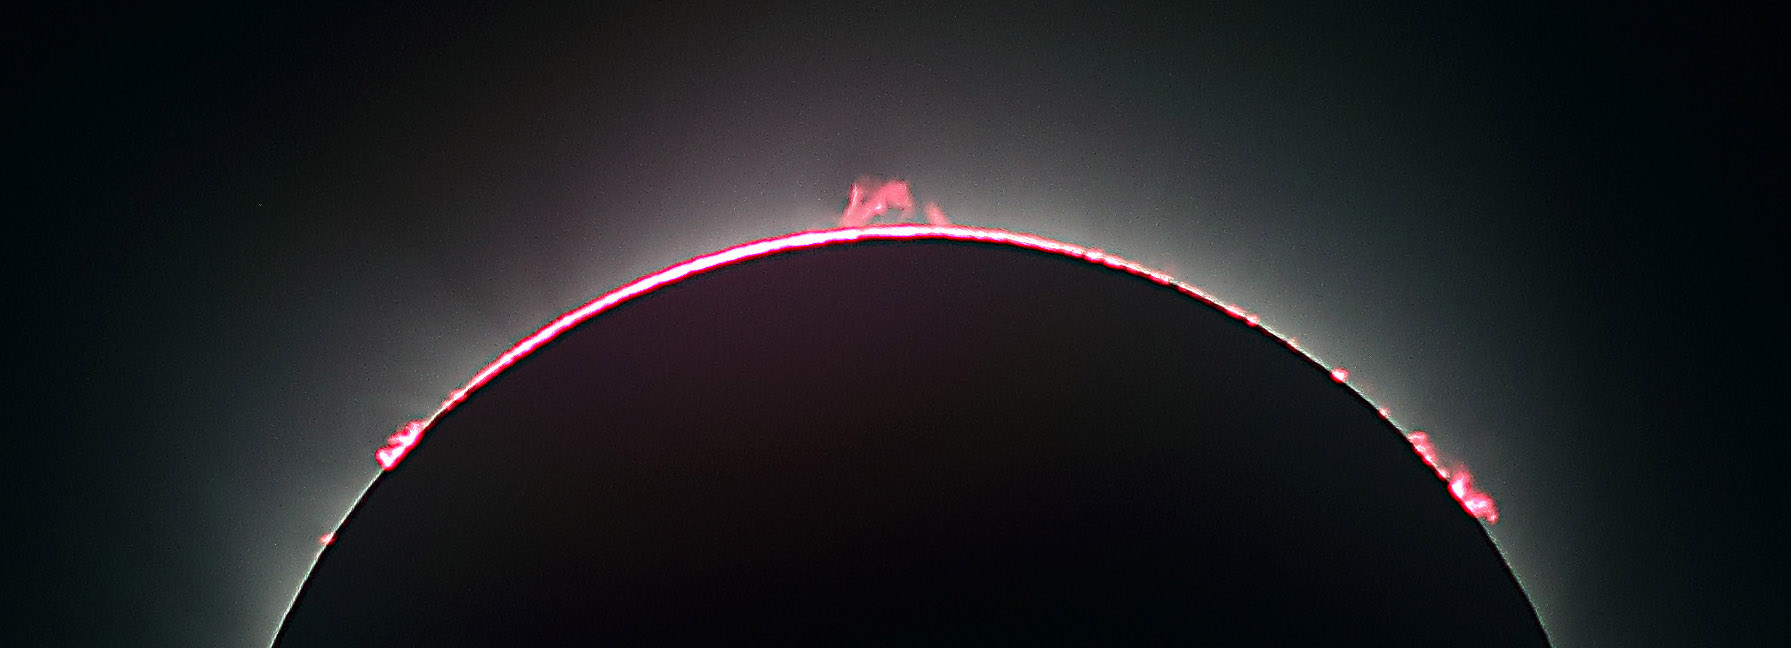 Solar Prominences during the 2017 Total Solar Eclipse by John Asztalos. MAS image.